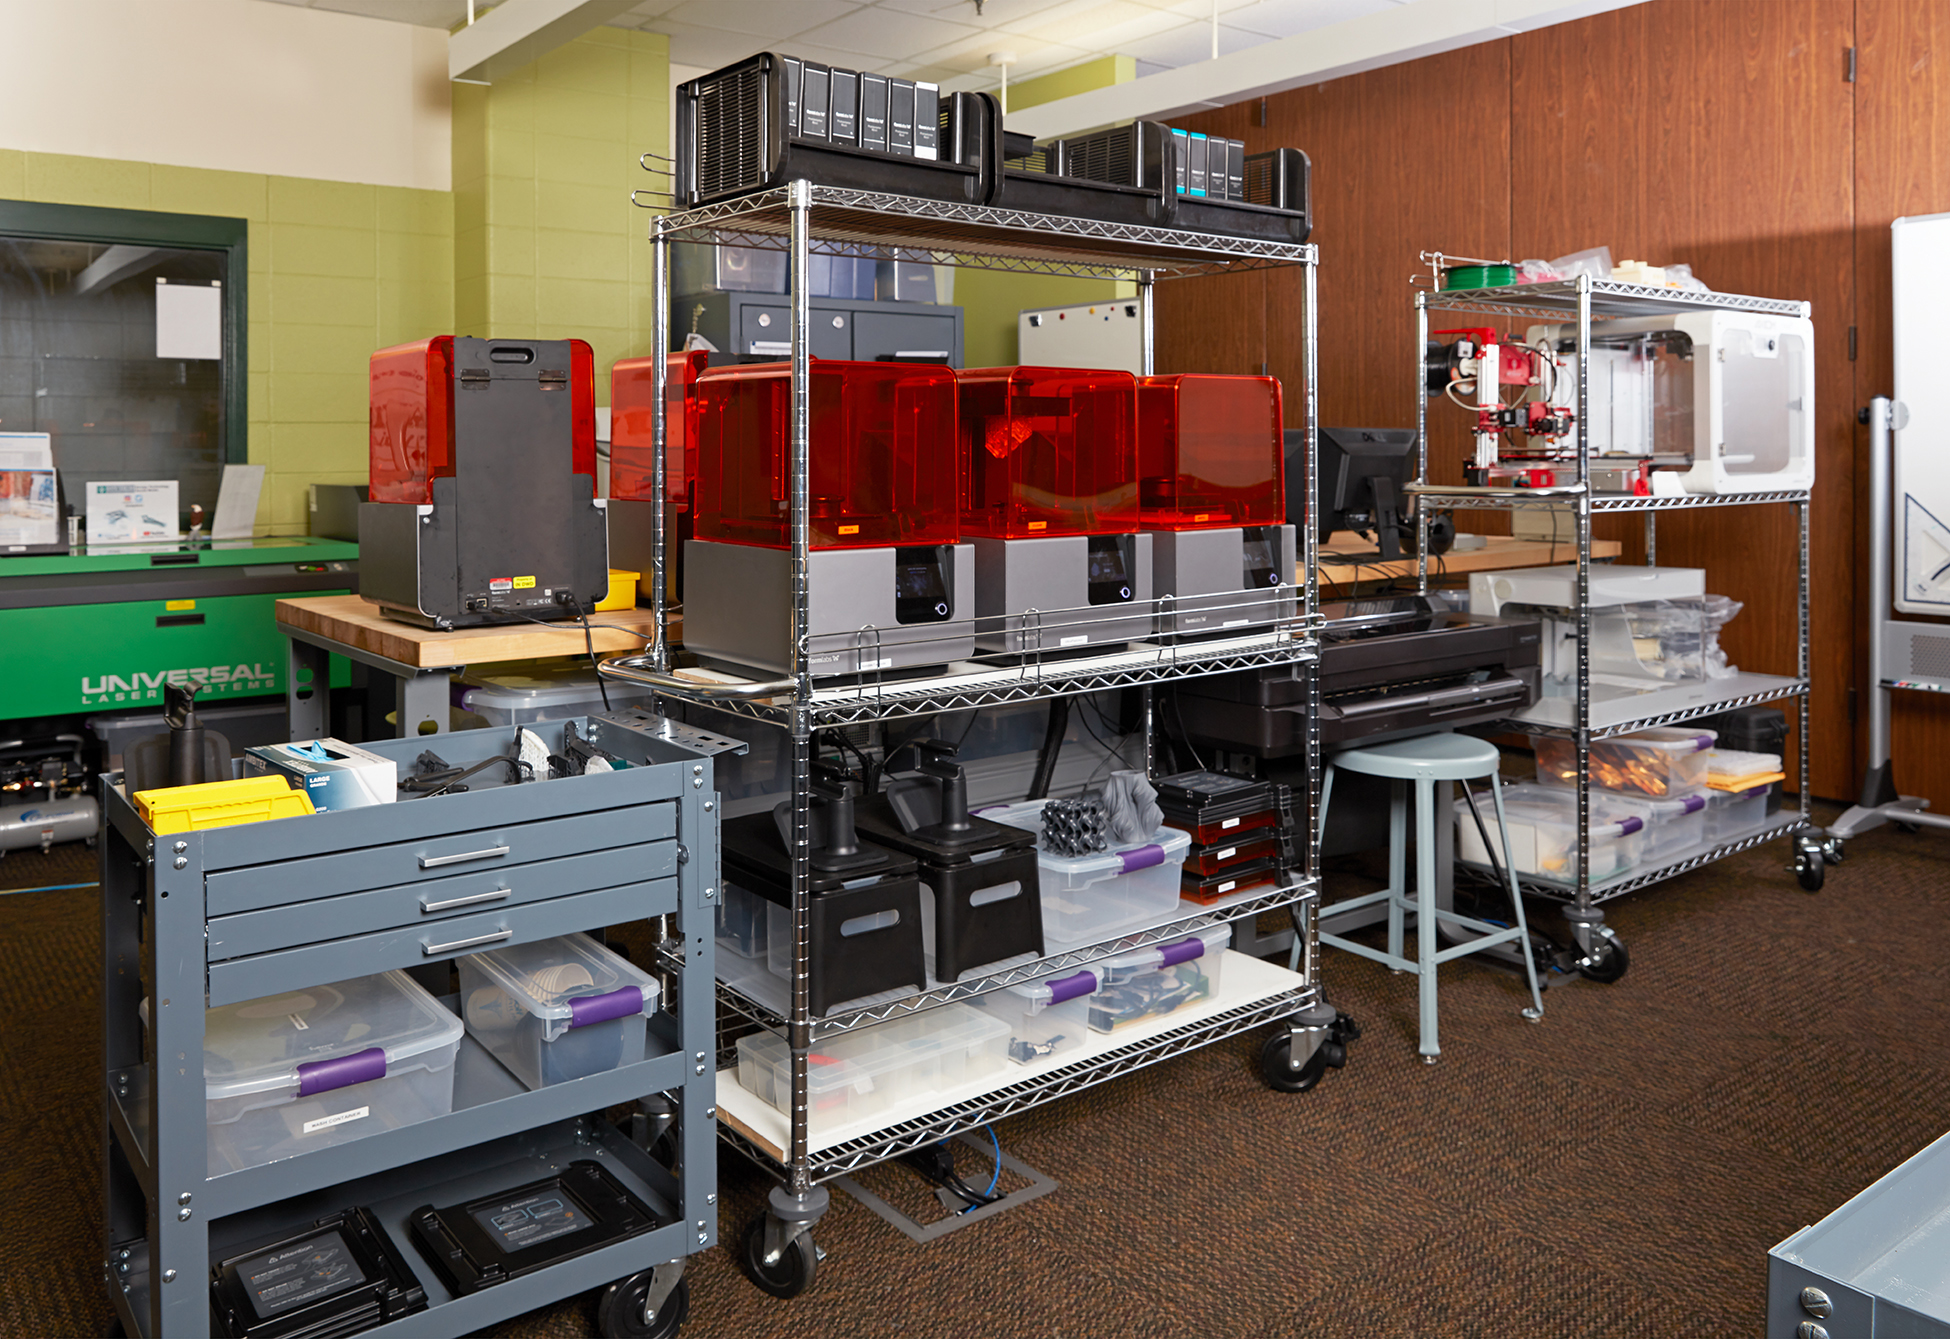 An array of Form 2 3D printers sit on a shelf in Ivy Tech's fab lab.